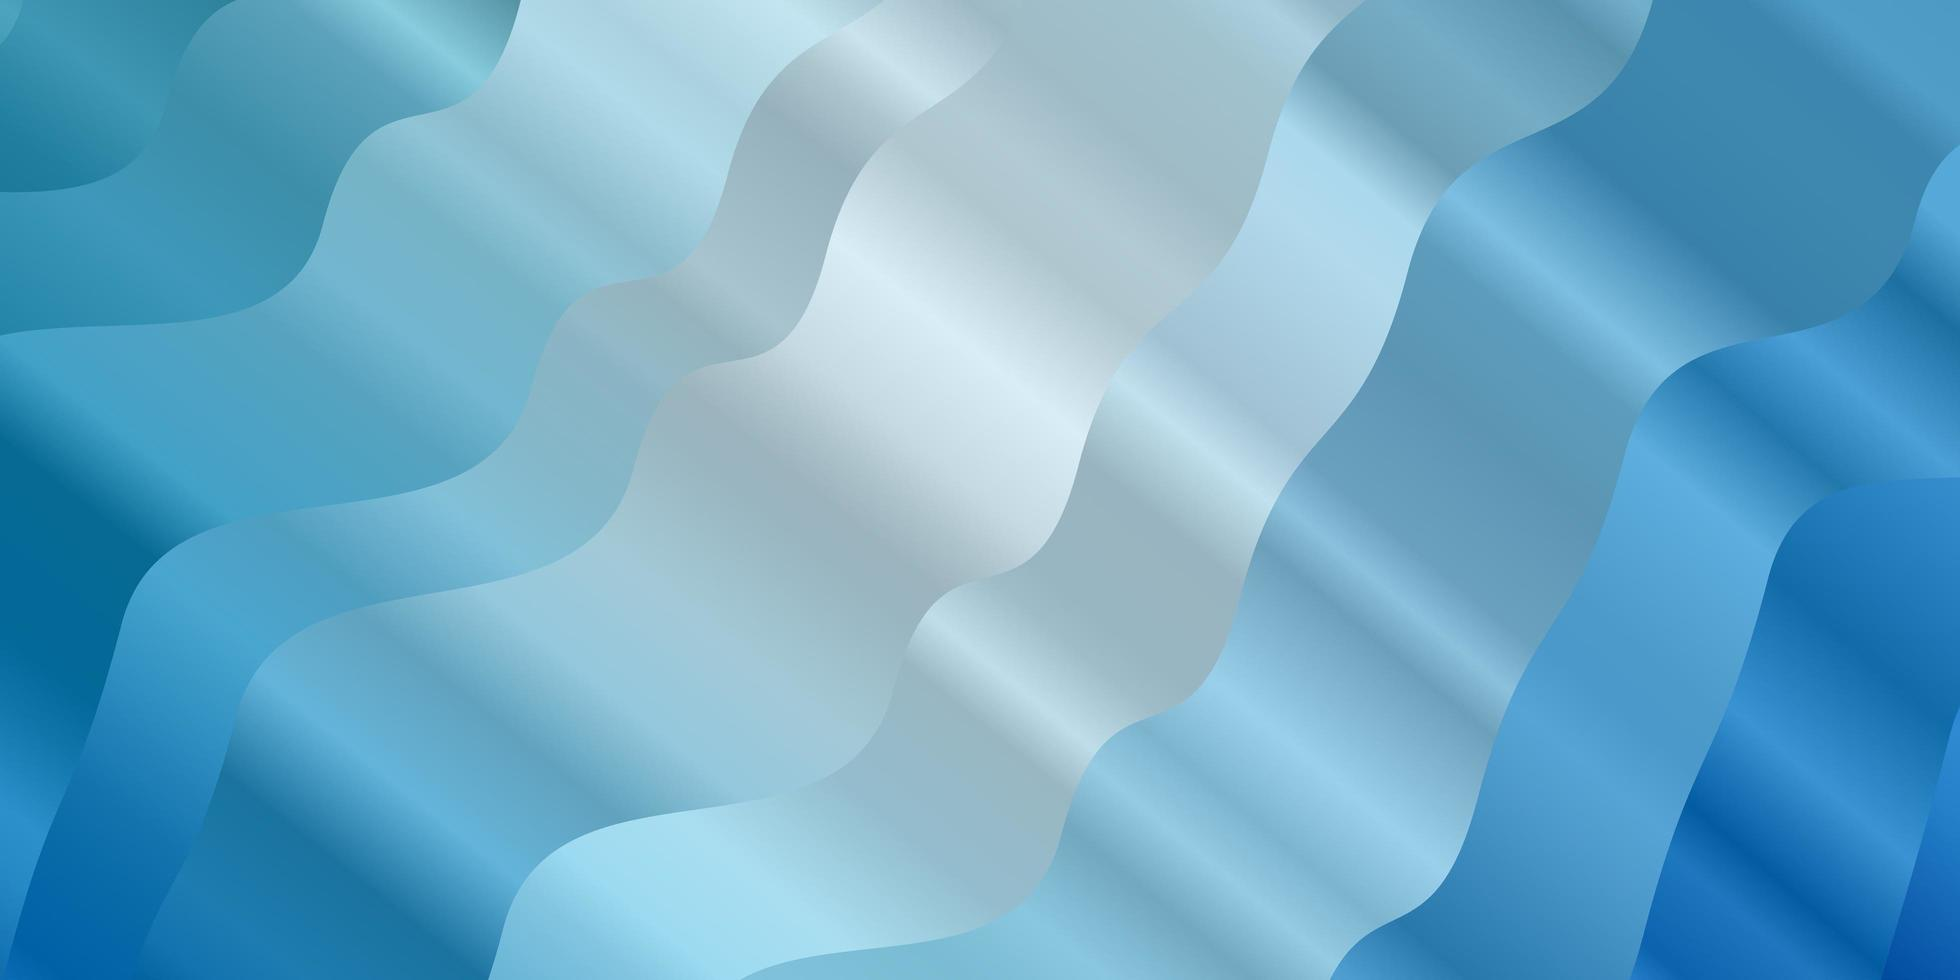 Light BLUE vector background with curved lines